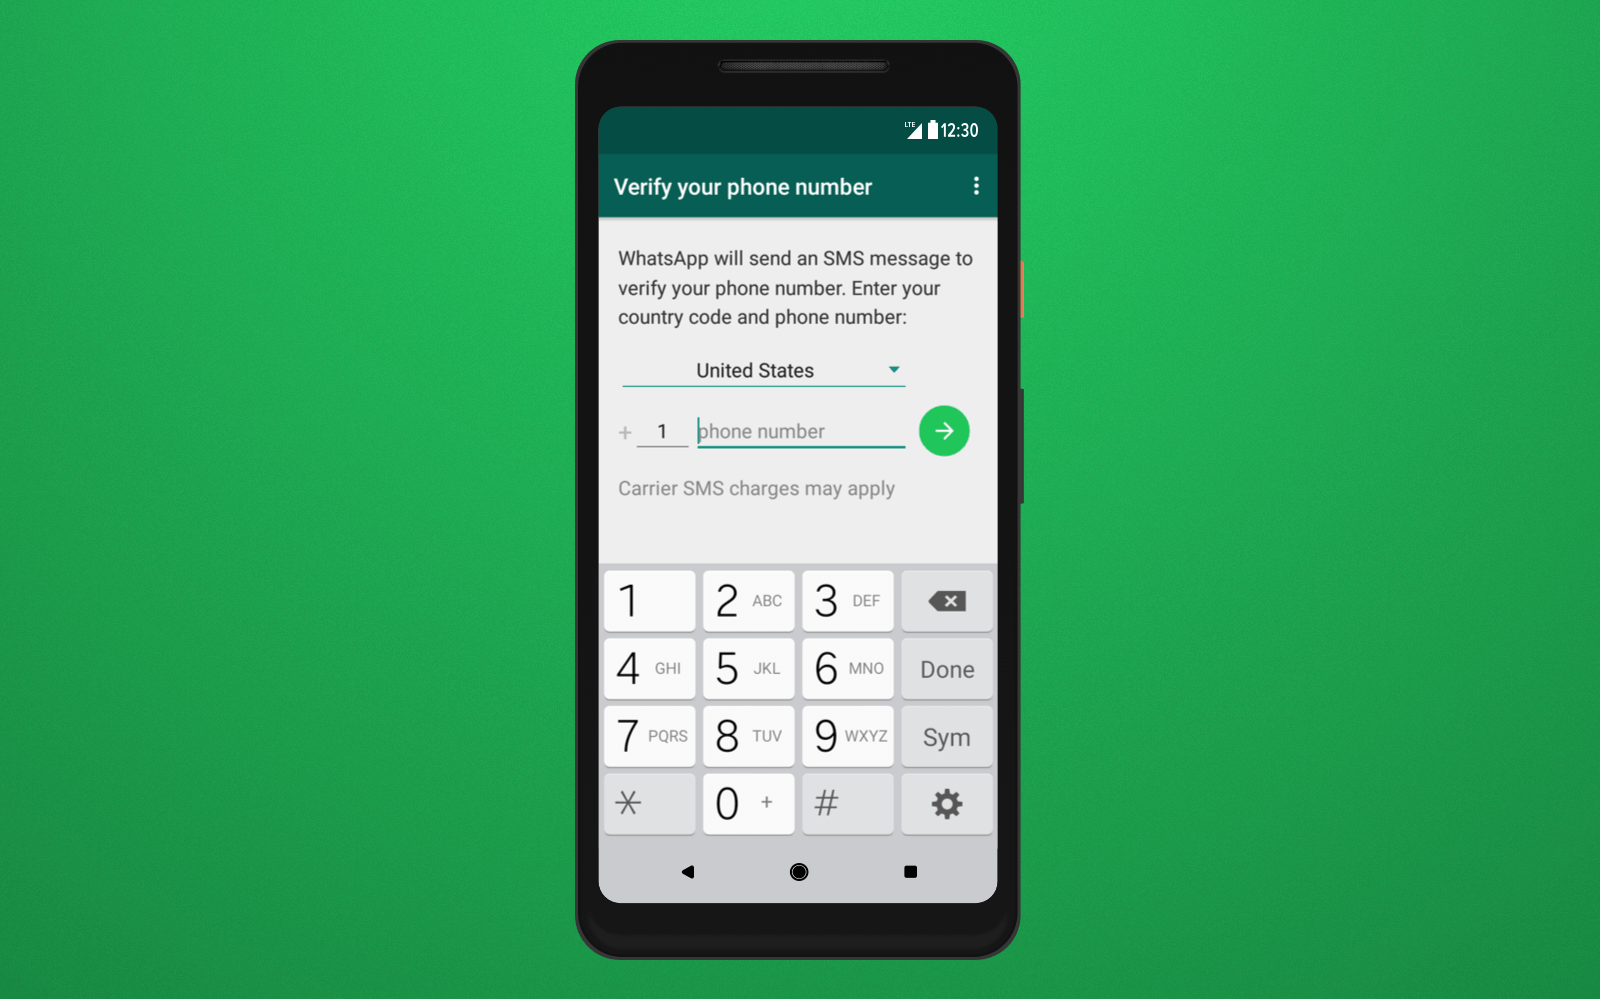 how to develop an app like whatsapp